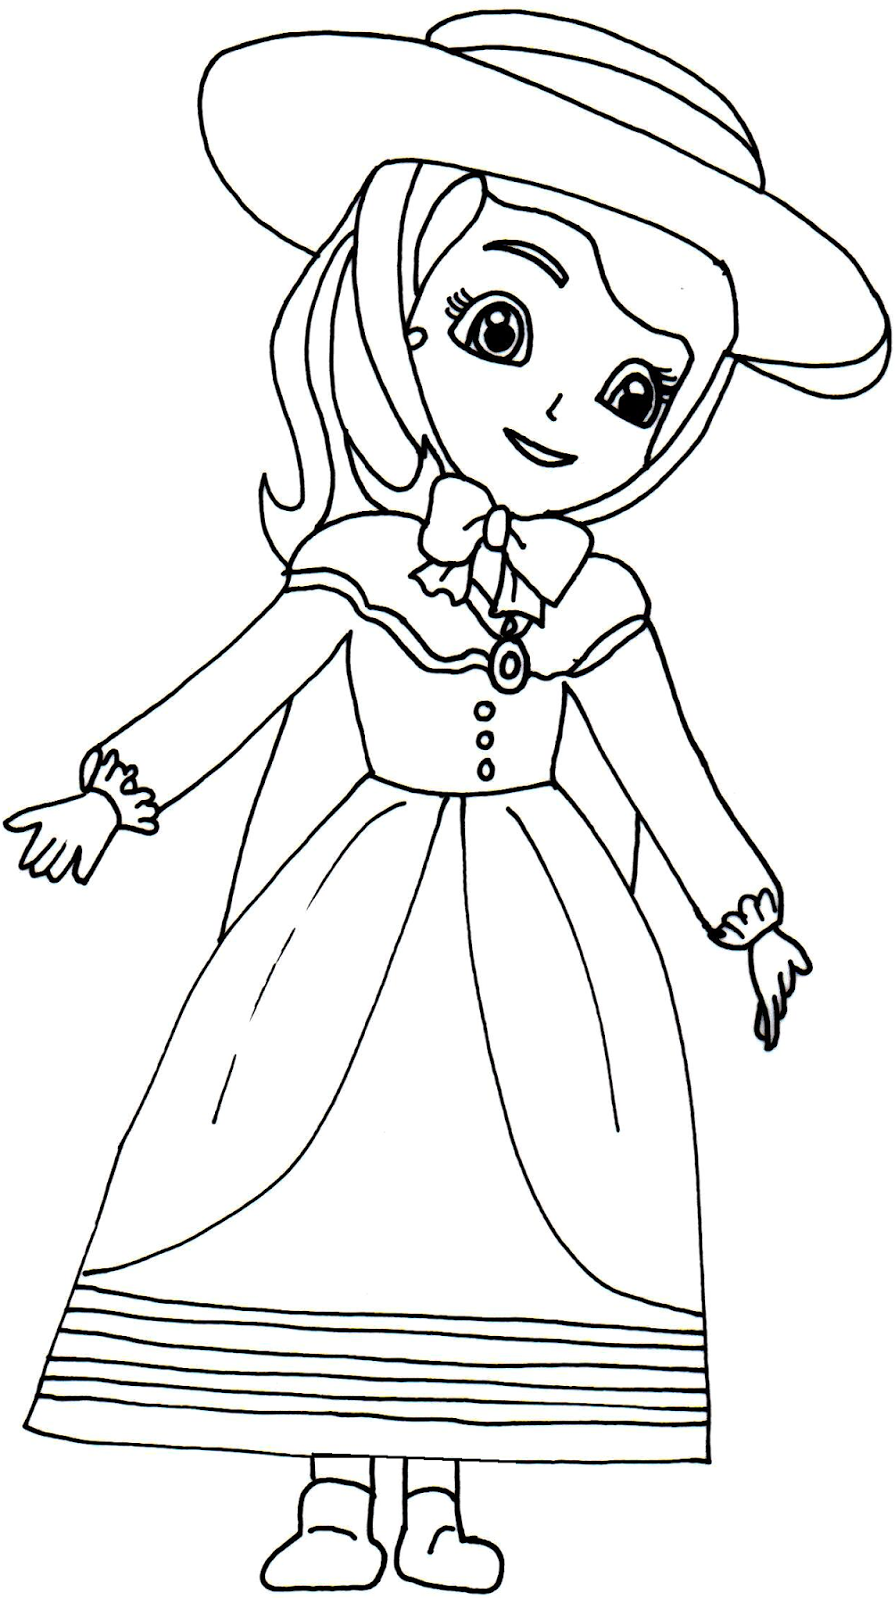 aunt venture sofia the first coloring page